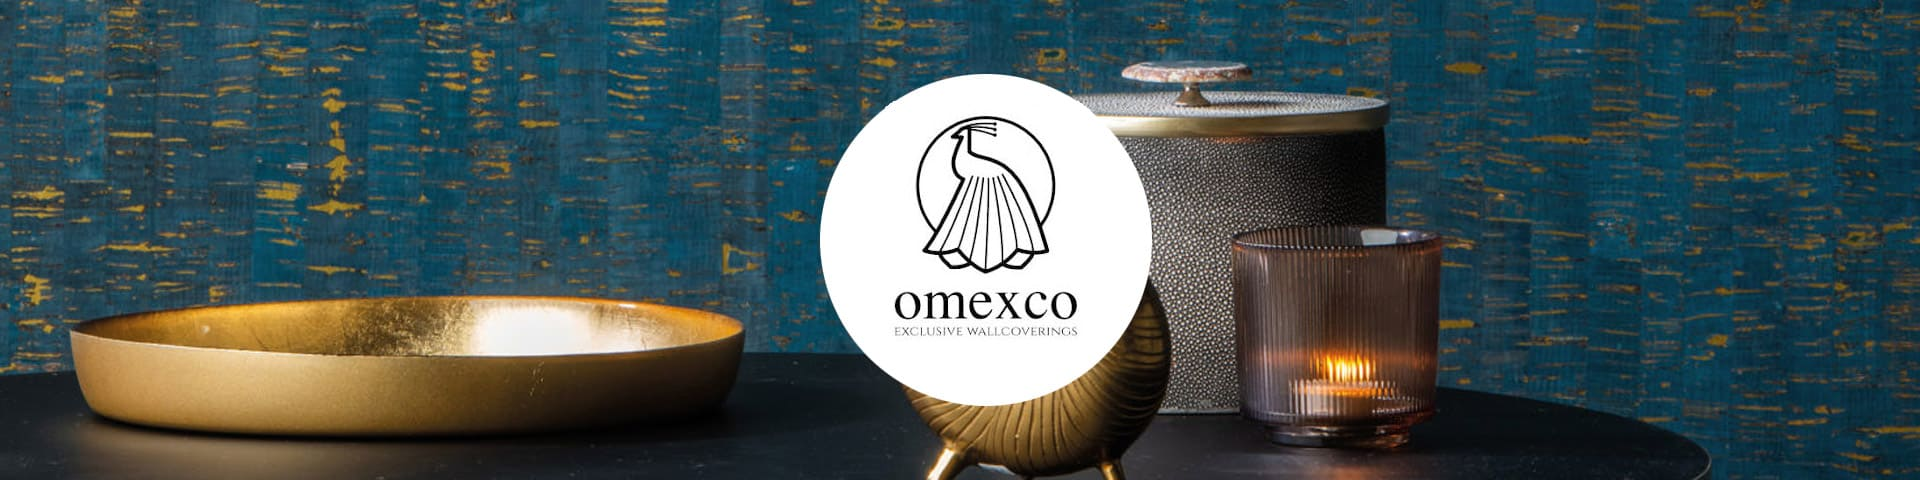 Omexco by Arte behang I Selected Wallpapers